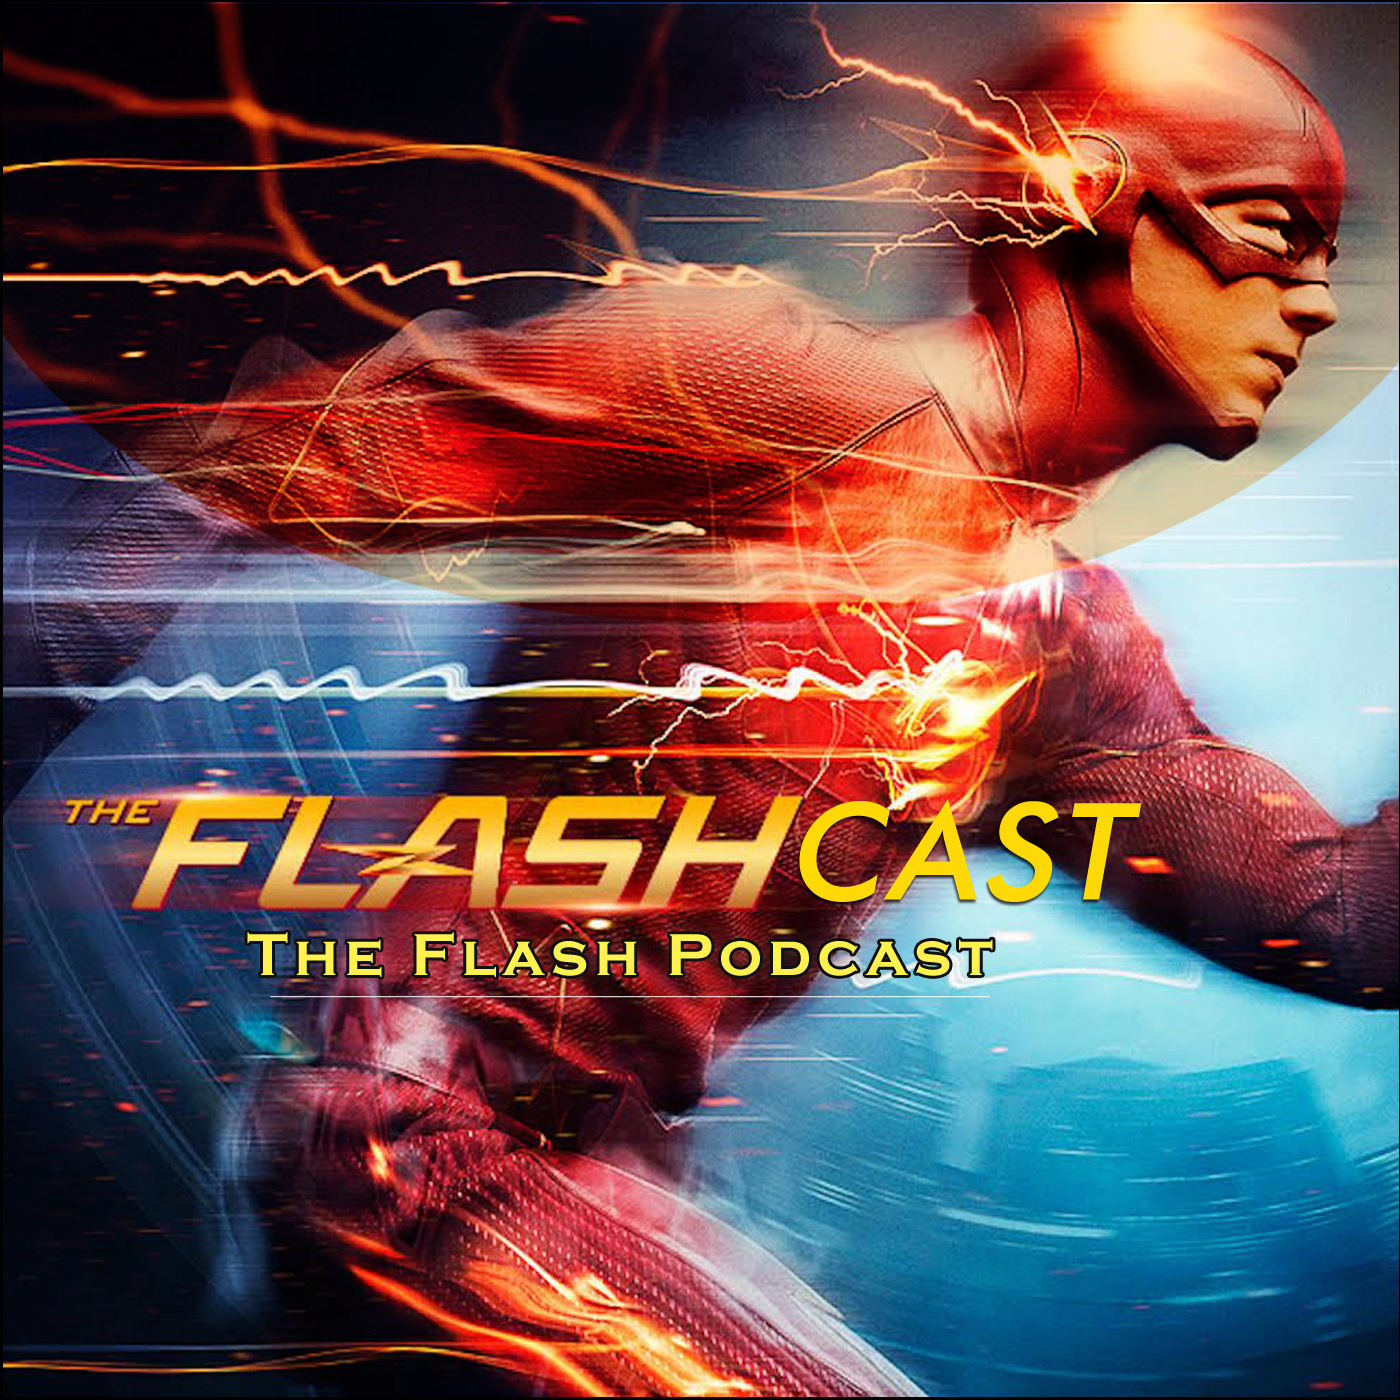 The Flashcast: THE FLASH Podcast